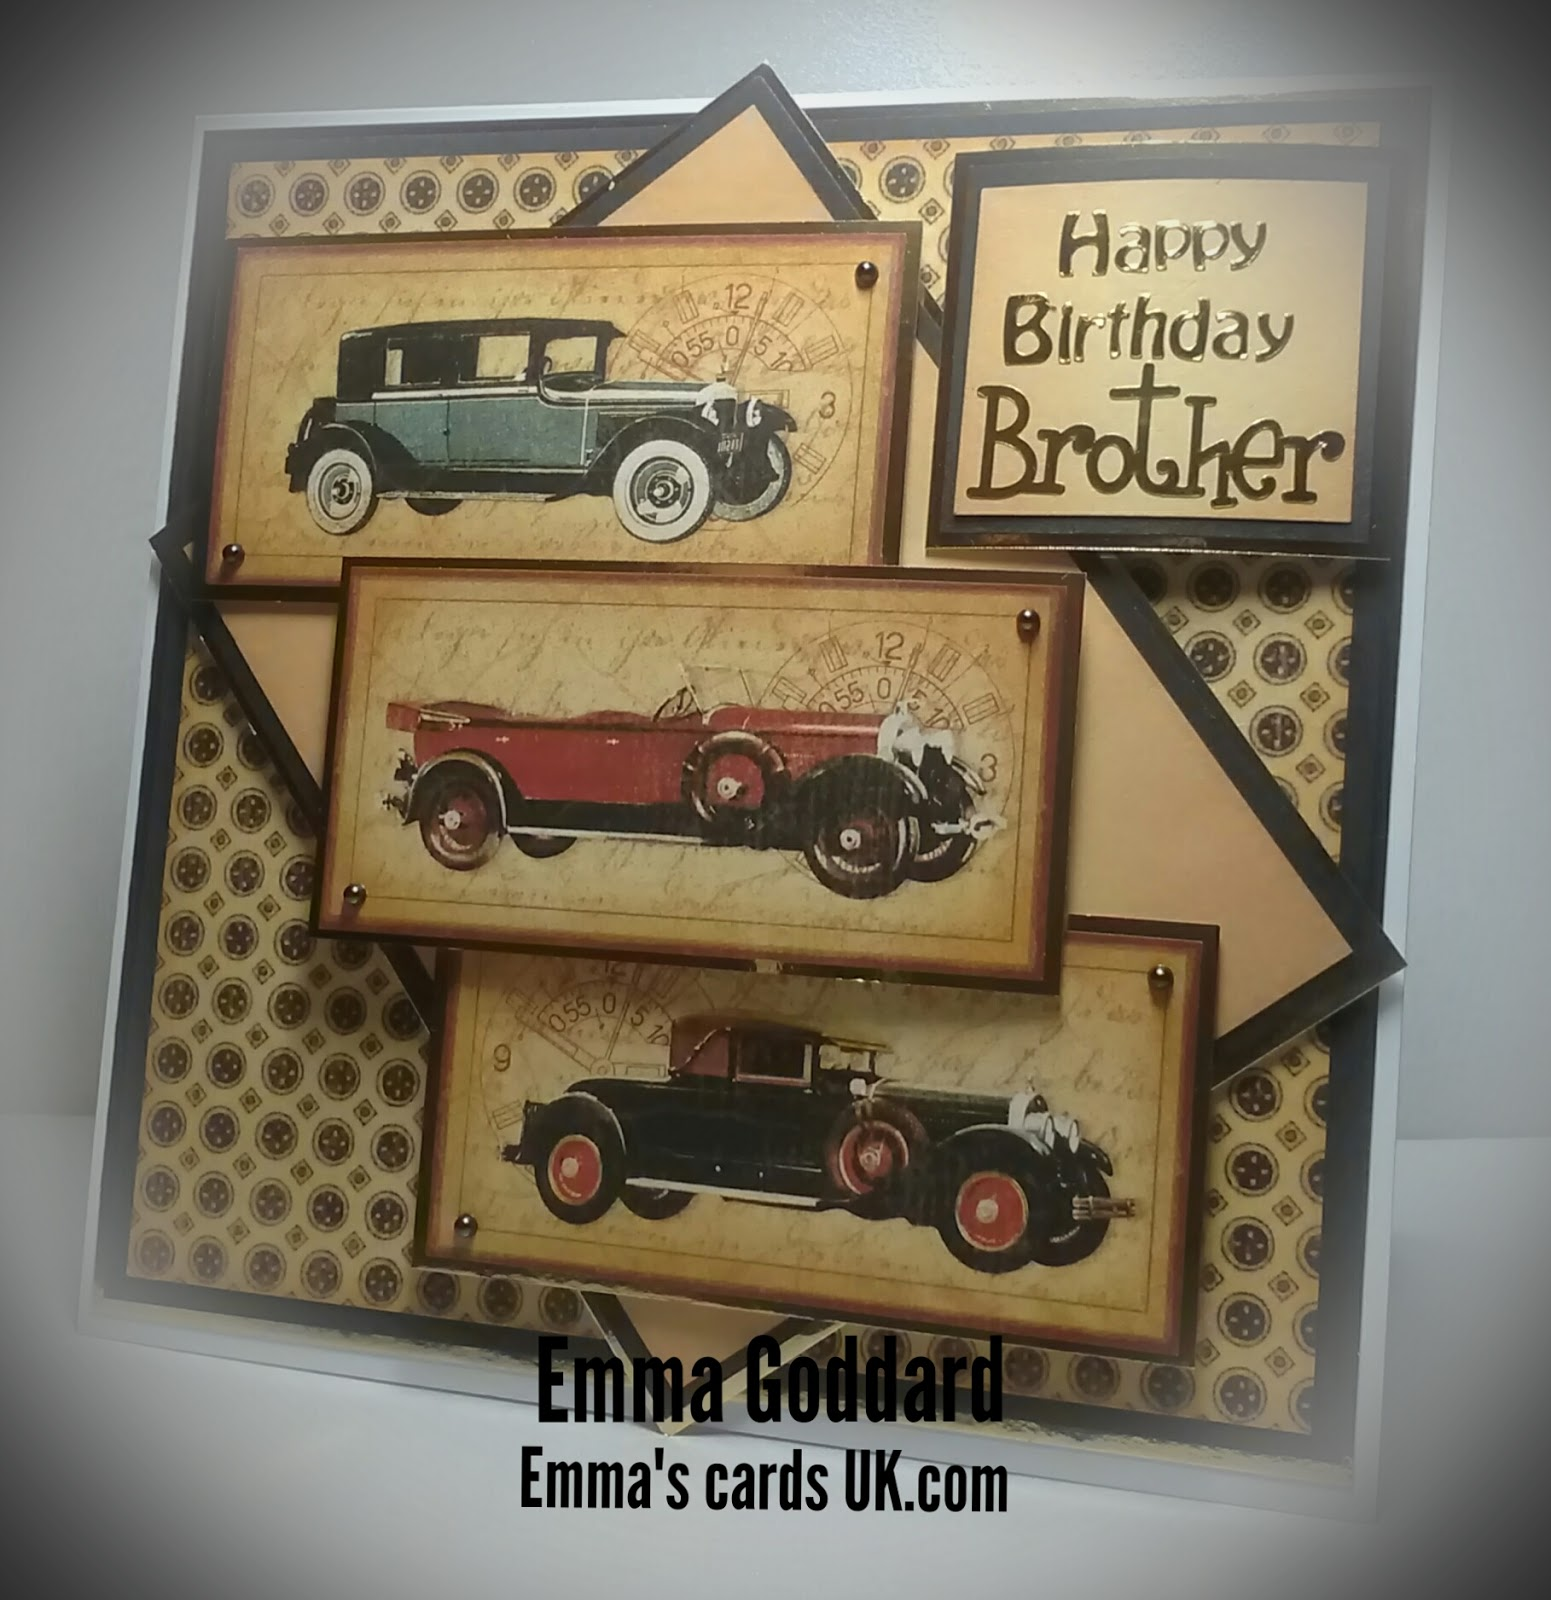 Emmas Cards UK: Vintage Cars